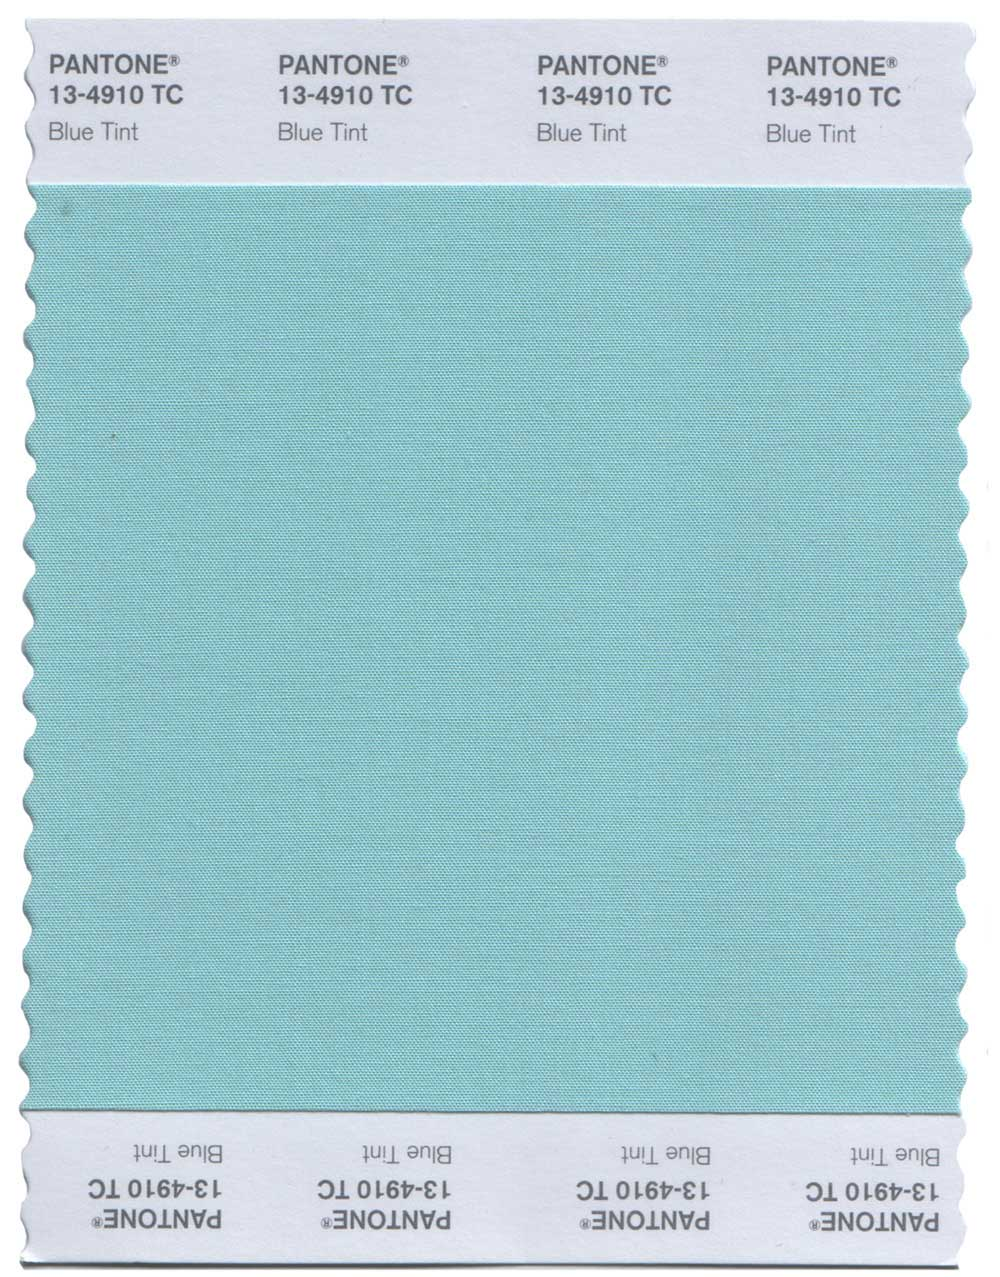 Pantone Original Swatch 15-0146 Green Flash